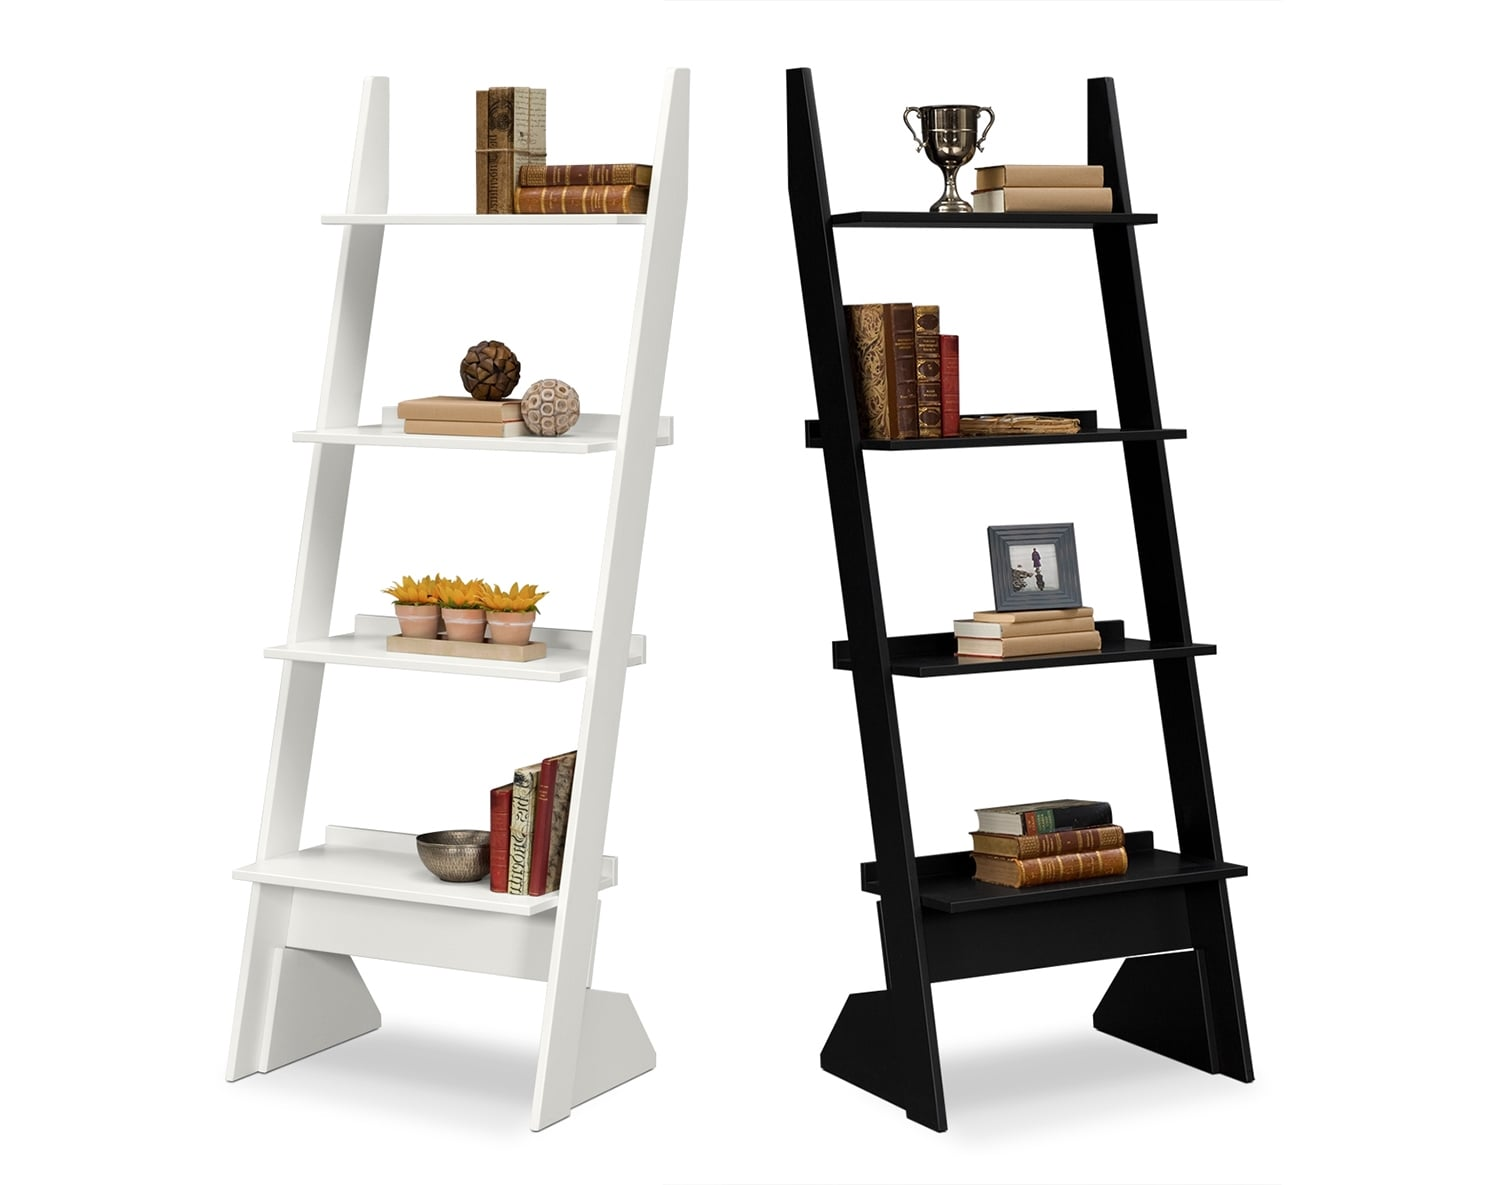 The Plantation Cove Leaning Bookshelf Collection